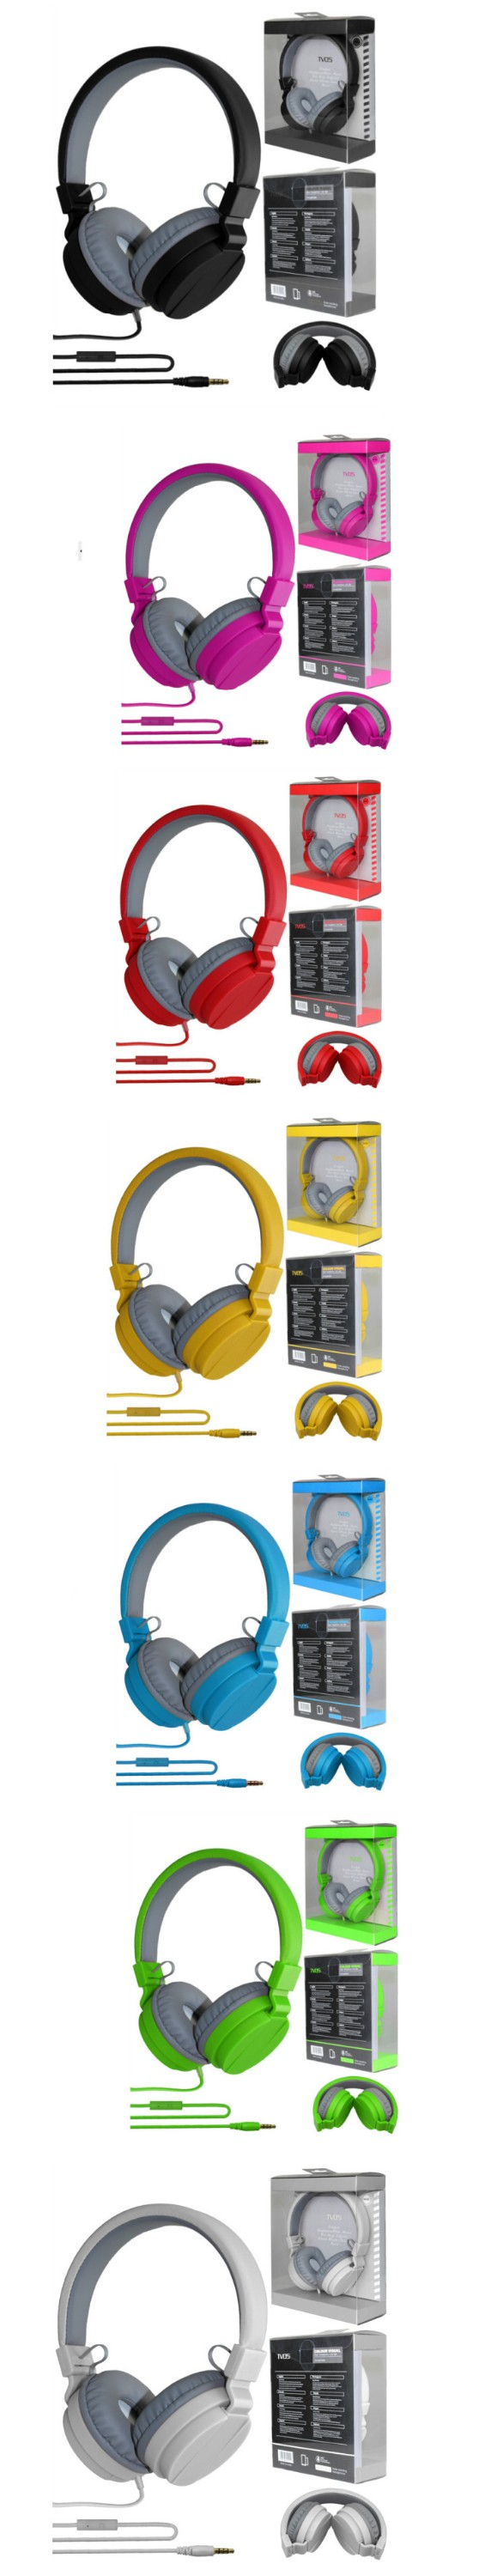 China Manufacturer Foldable Colorful Headphone,High Stereo Earphone for Mobile Phone